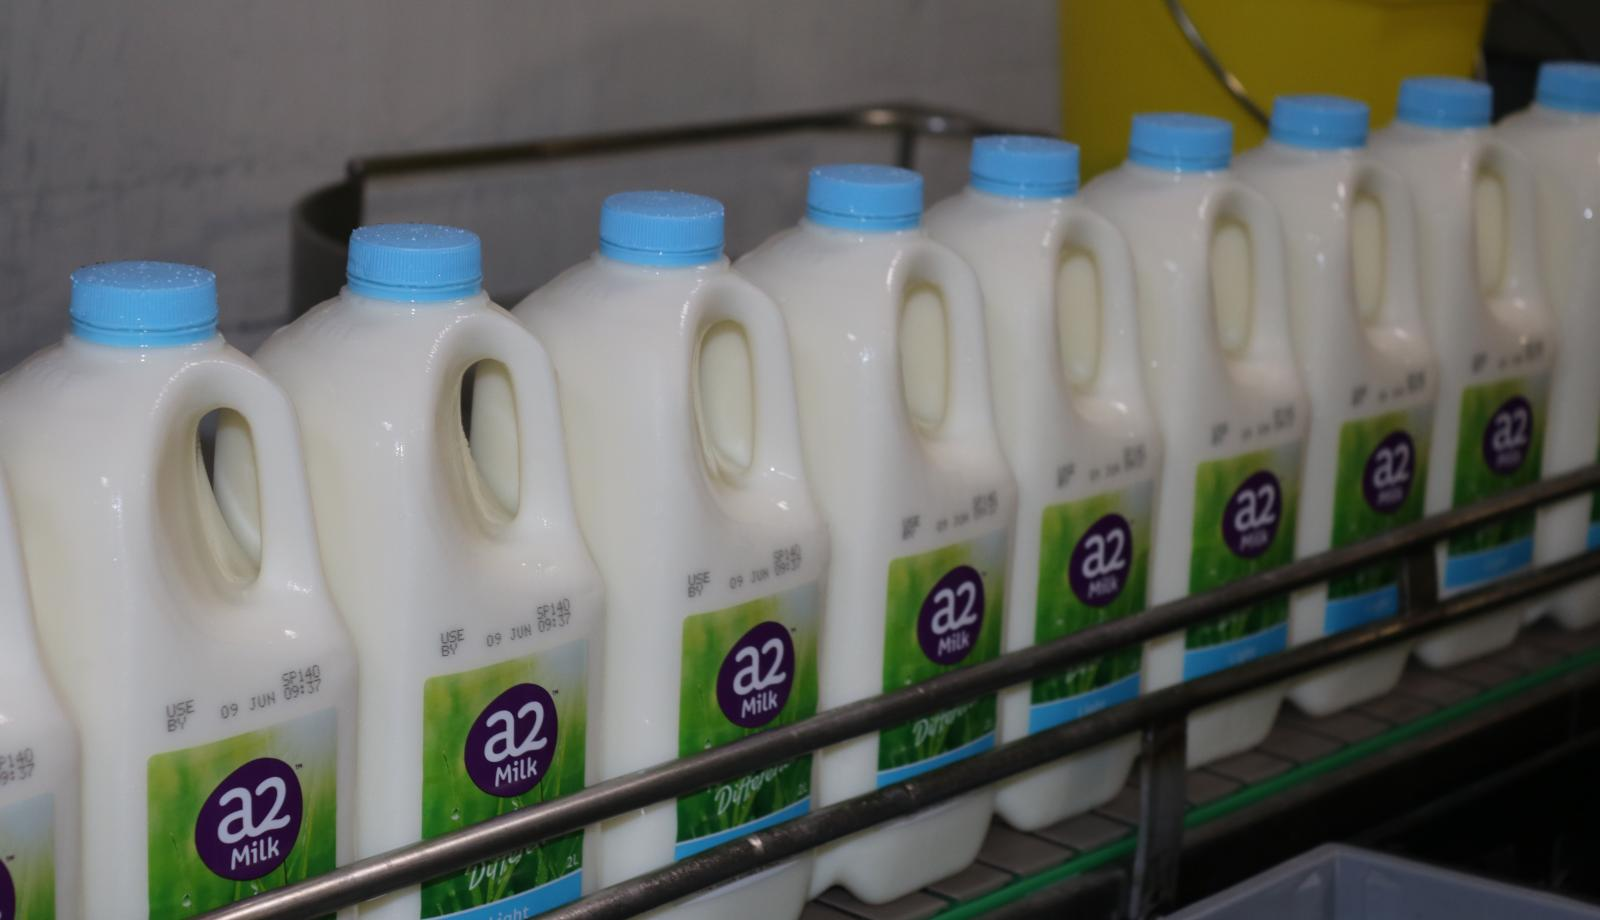 Delivering fresh milk to China's front door